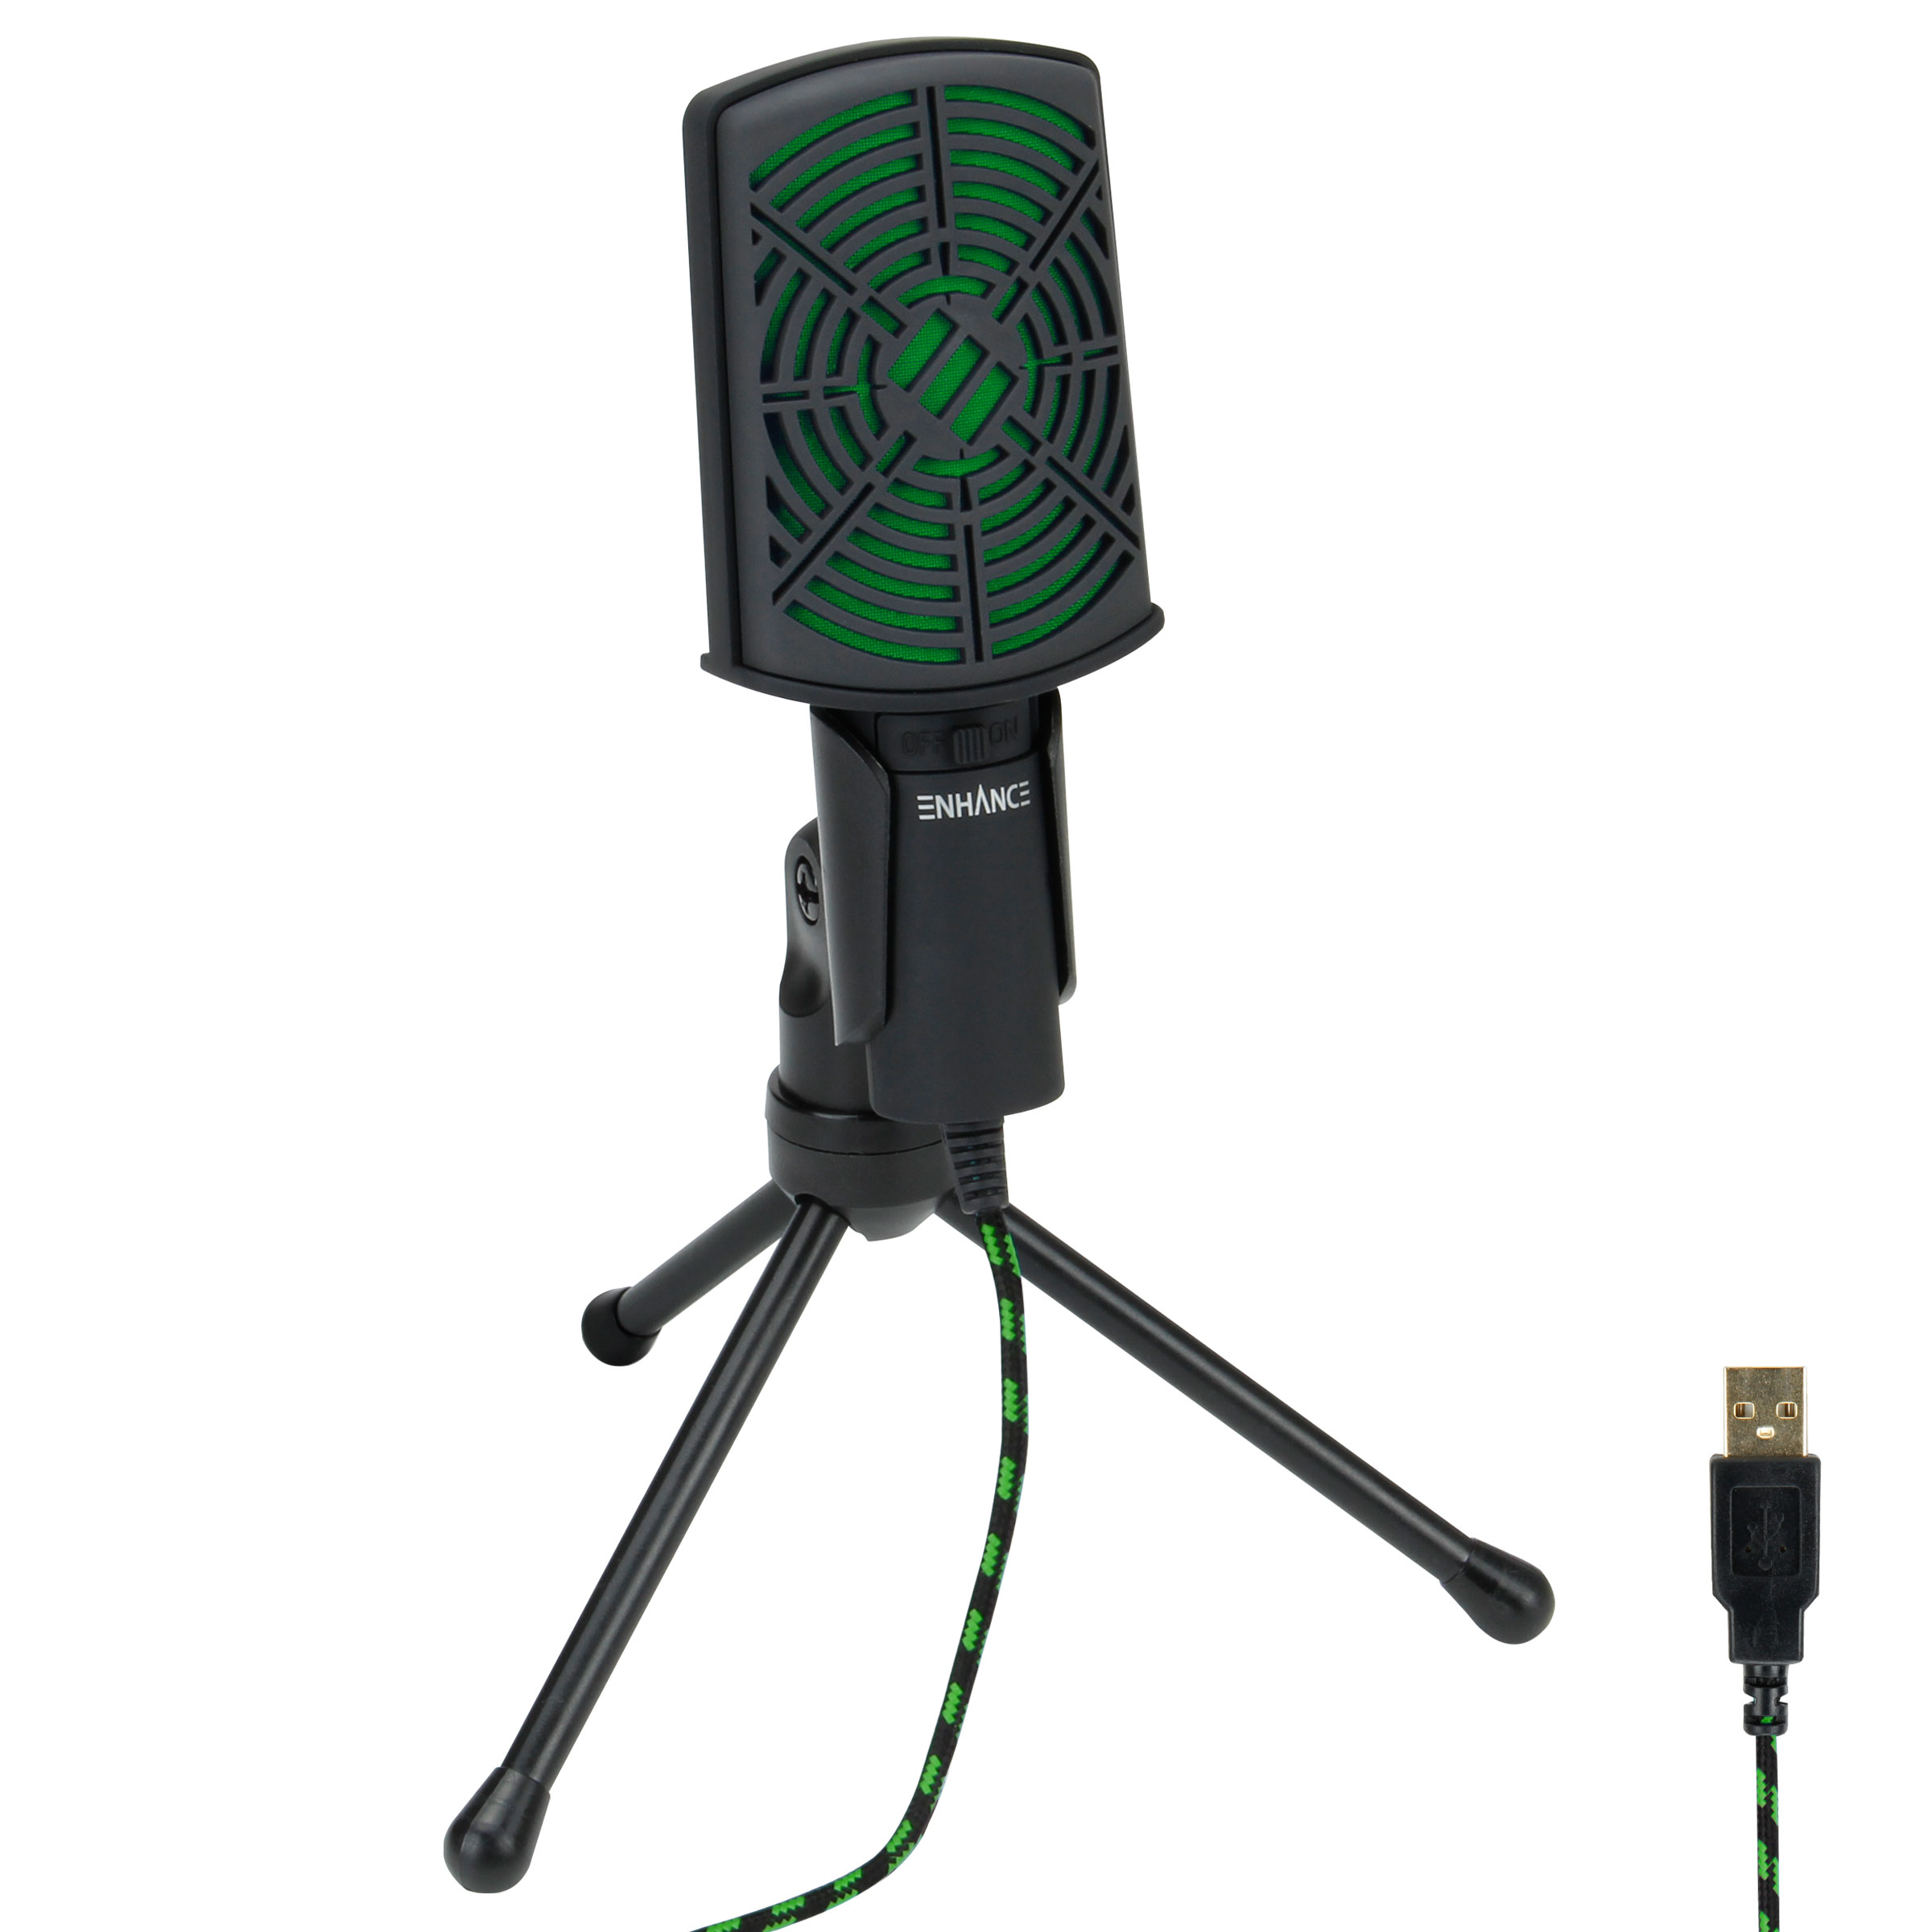 ENHANCE USB Condenser Microphone for PC / Laptop Gaming with Adjustable Desktop Stand 0